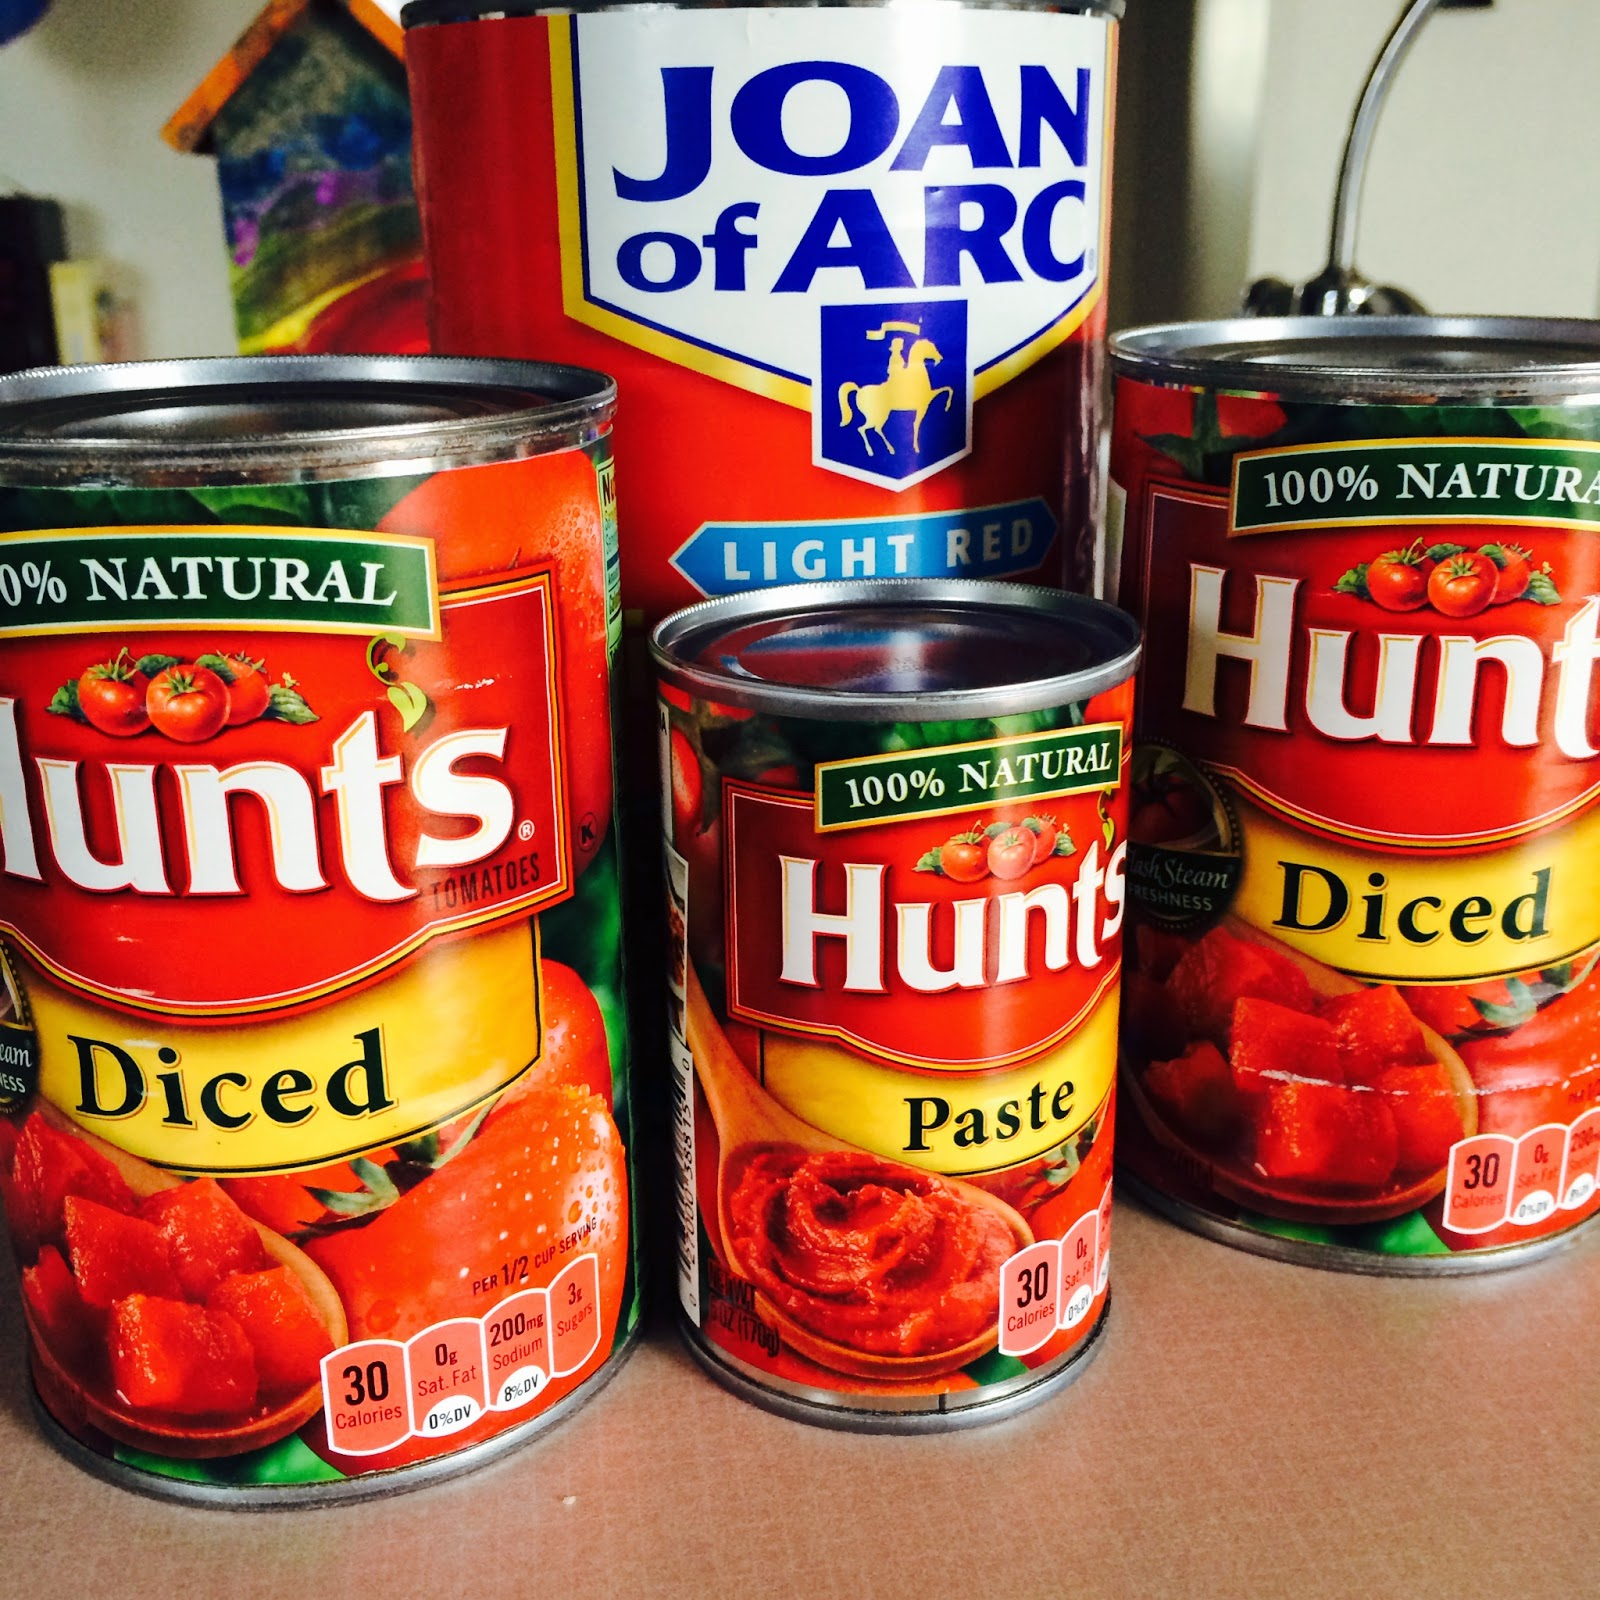 Hunt's diced tomatoes & tomato paste. Joan of Arc Kidney Beans.